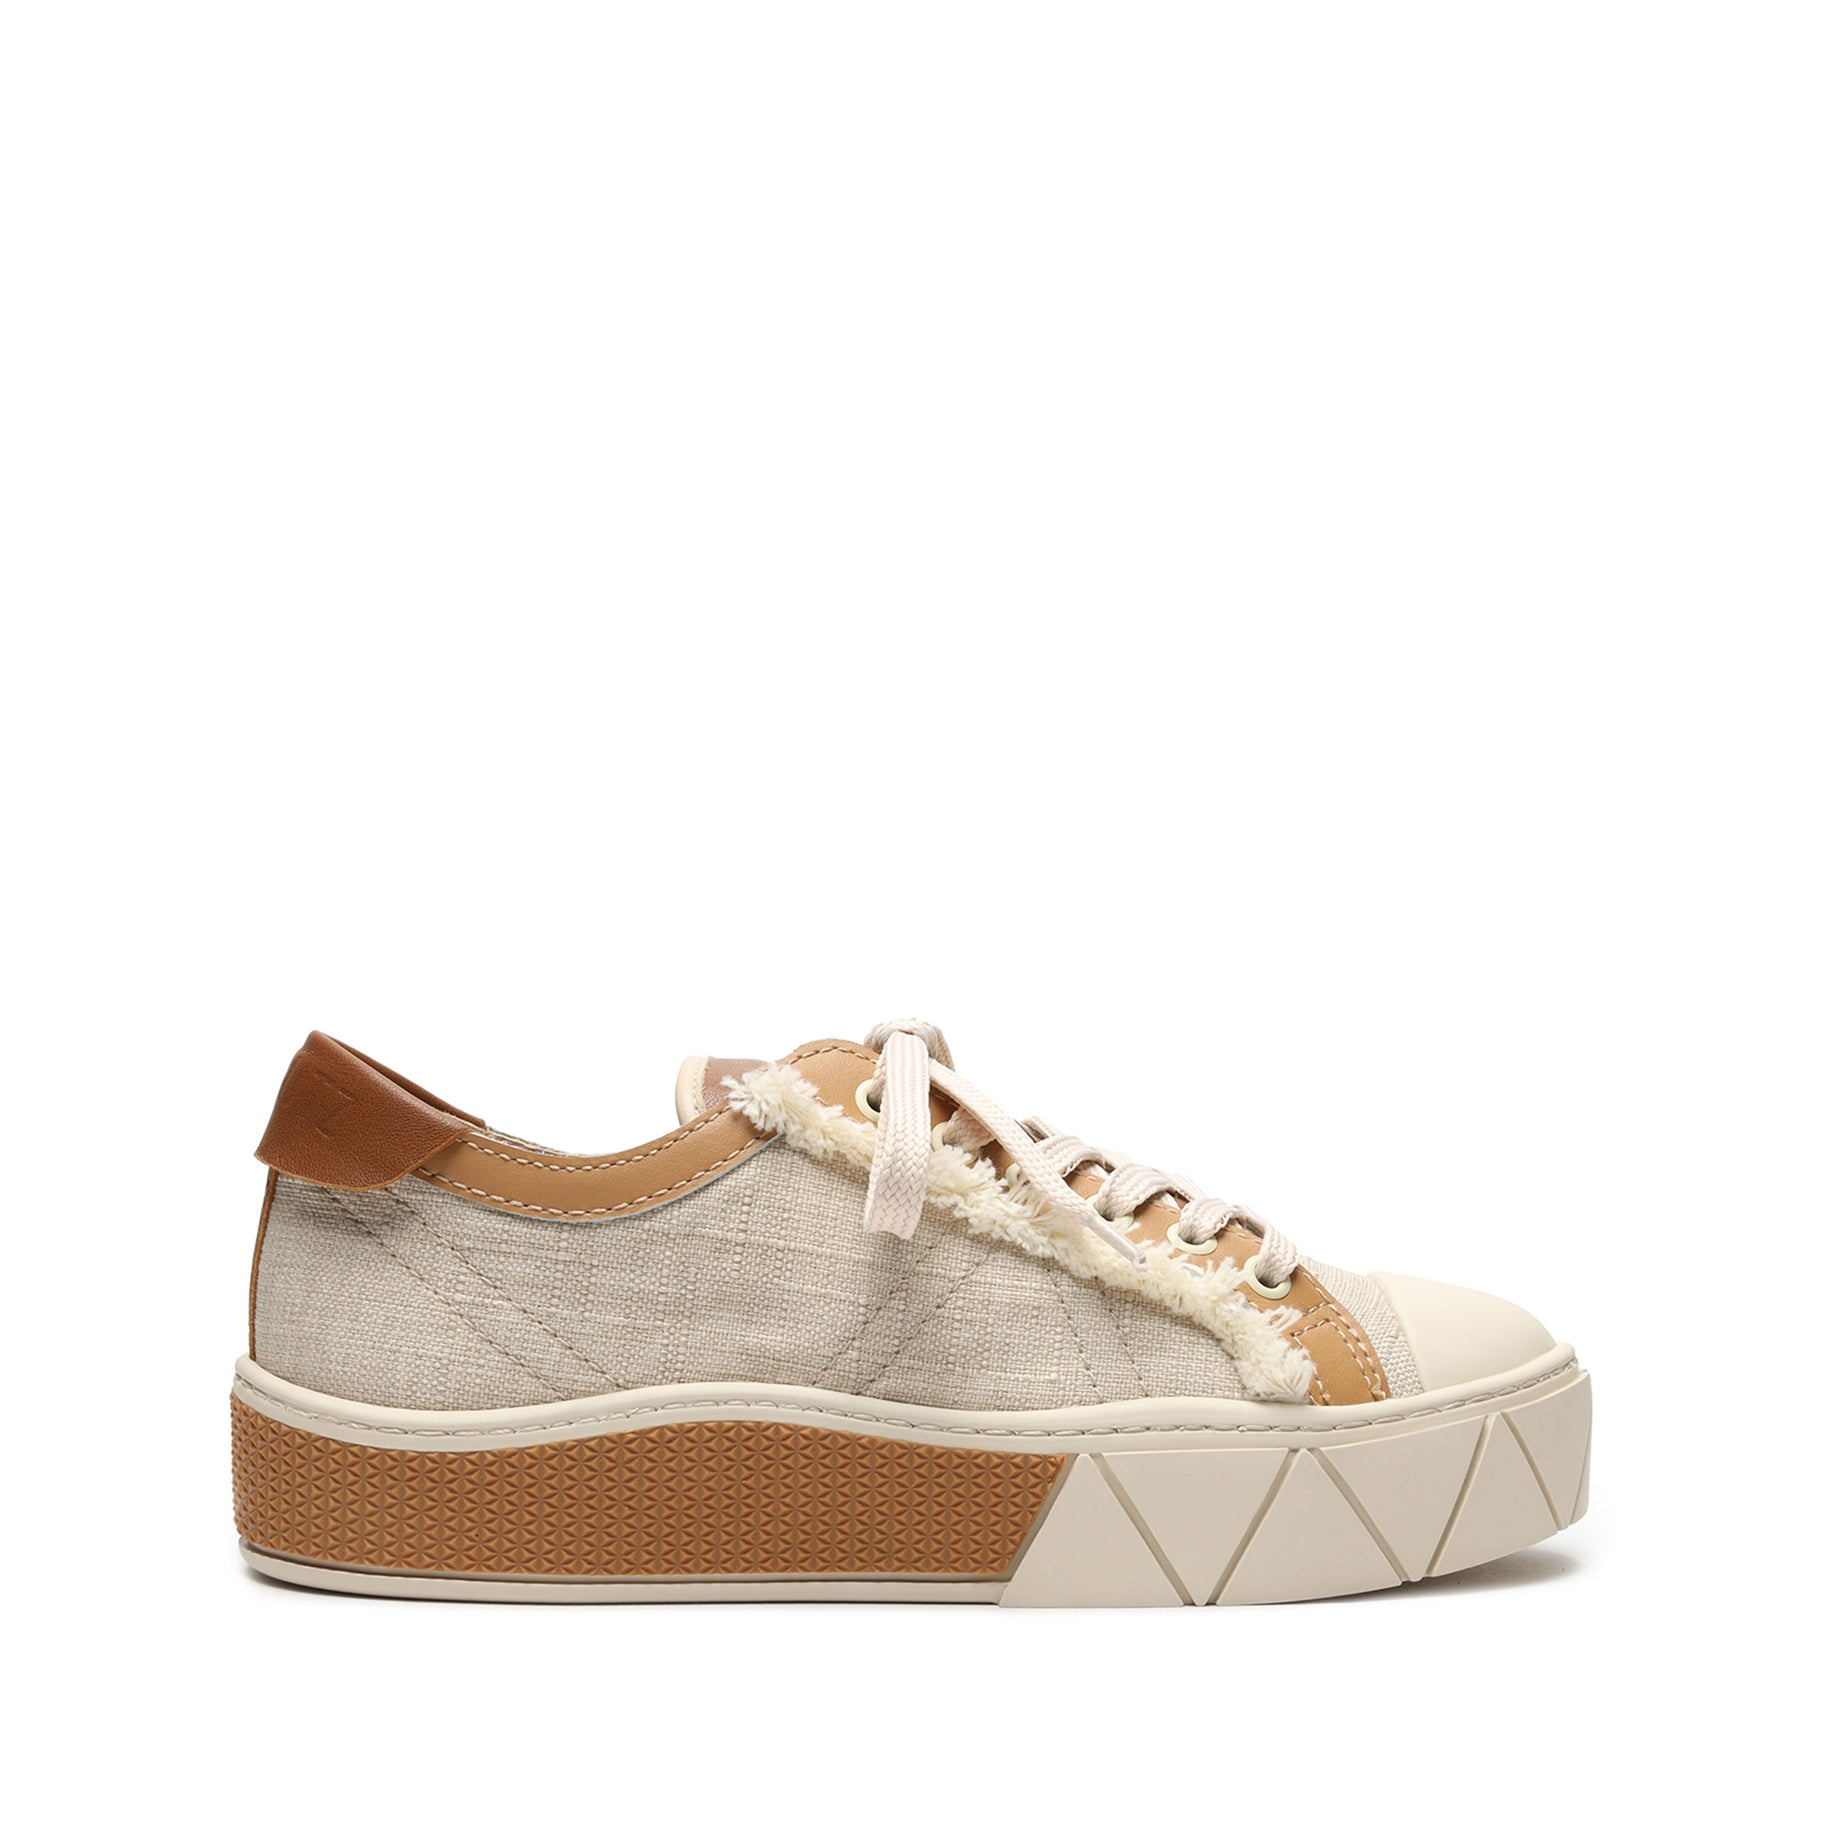 Evita Mixed Media Sneaker